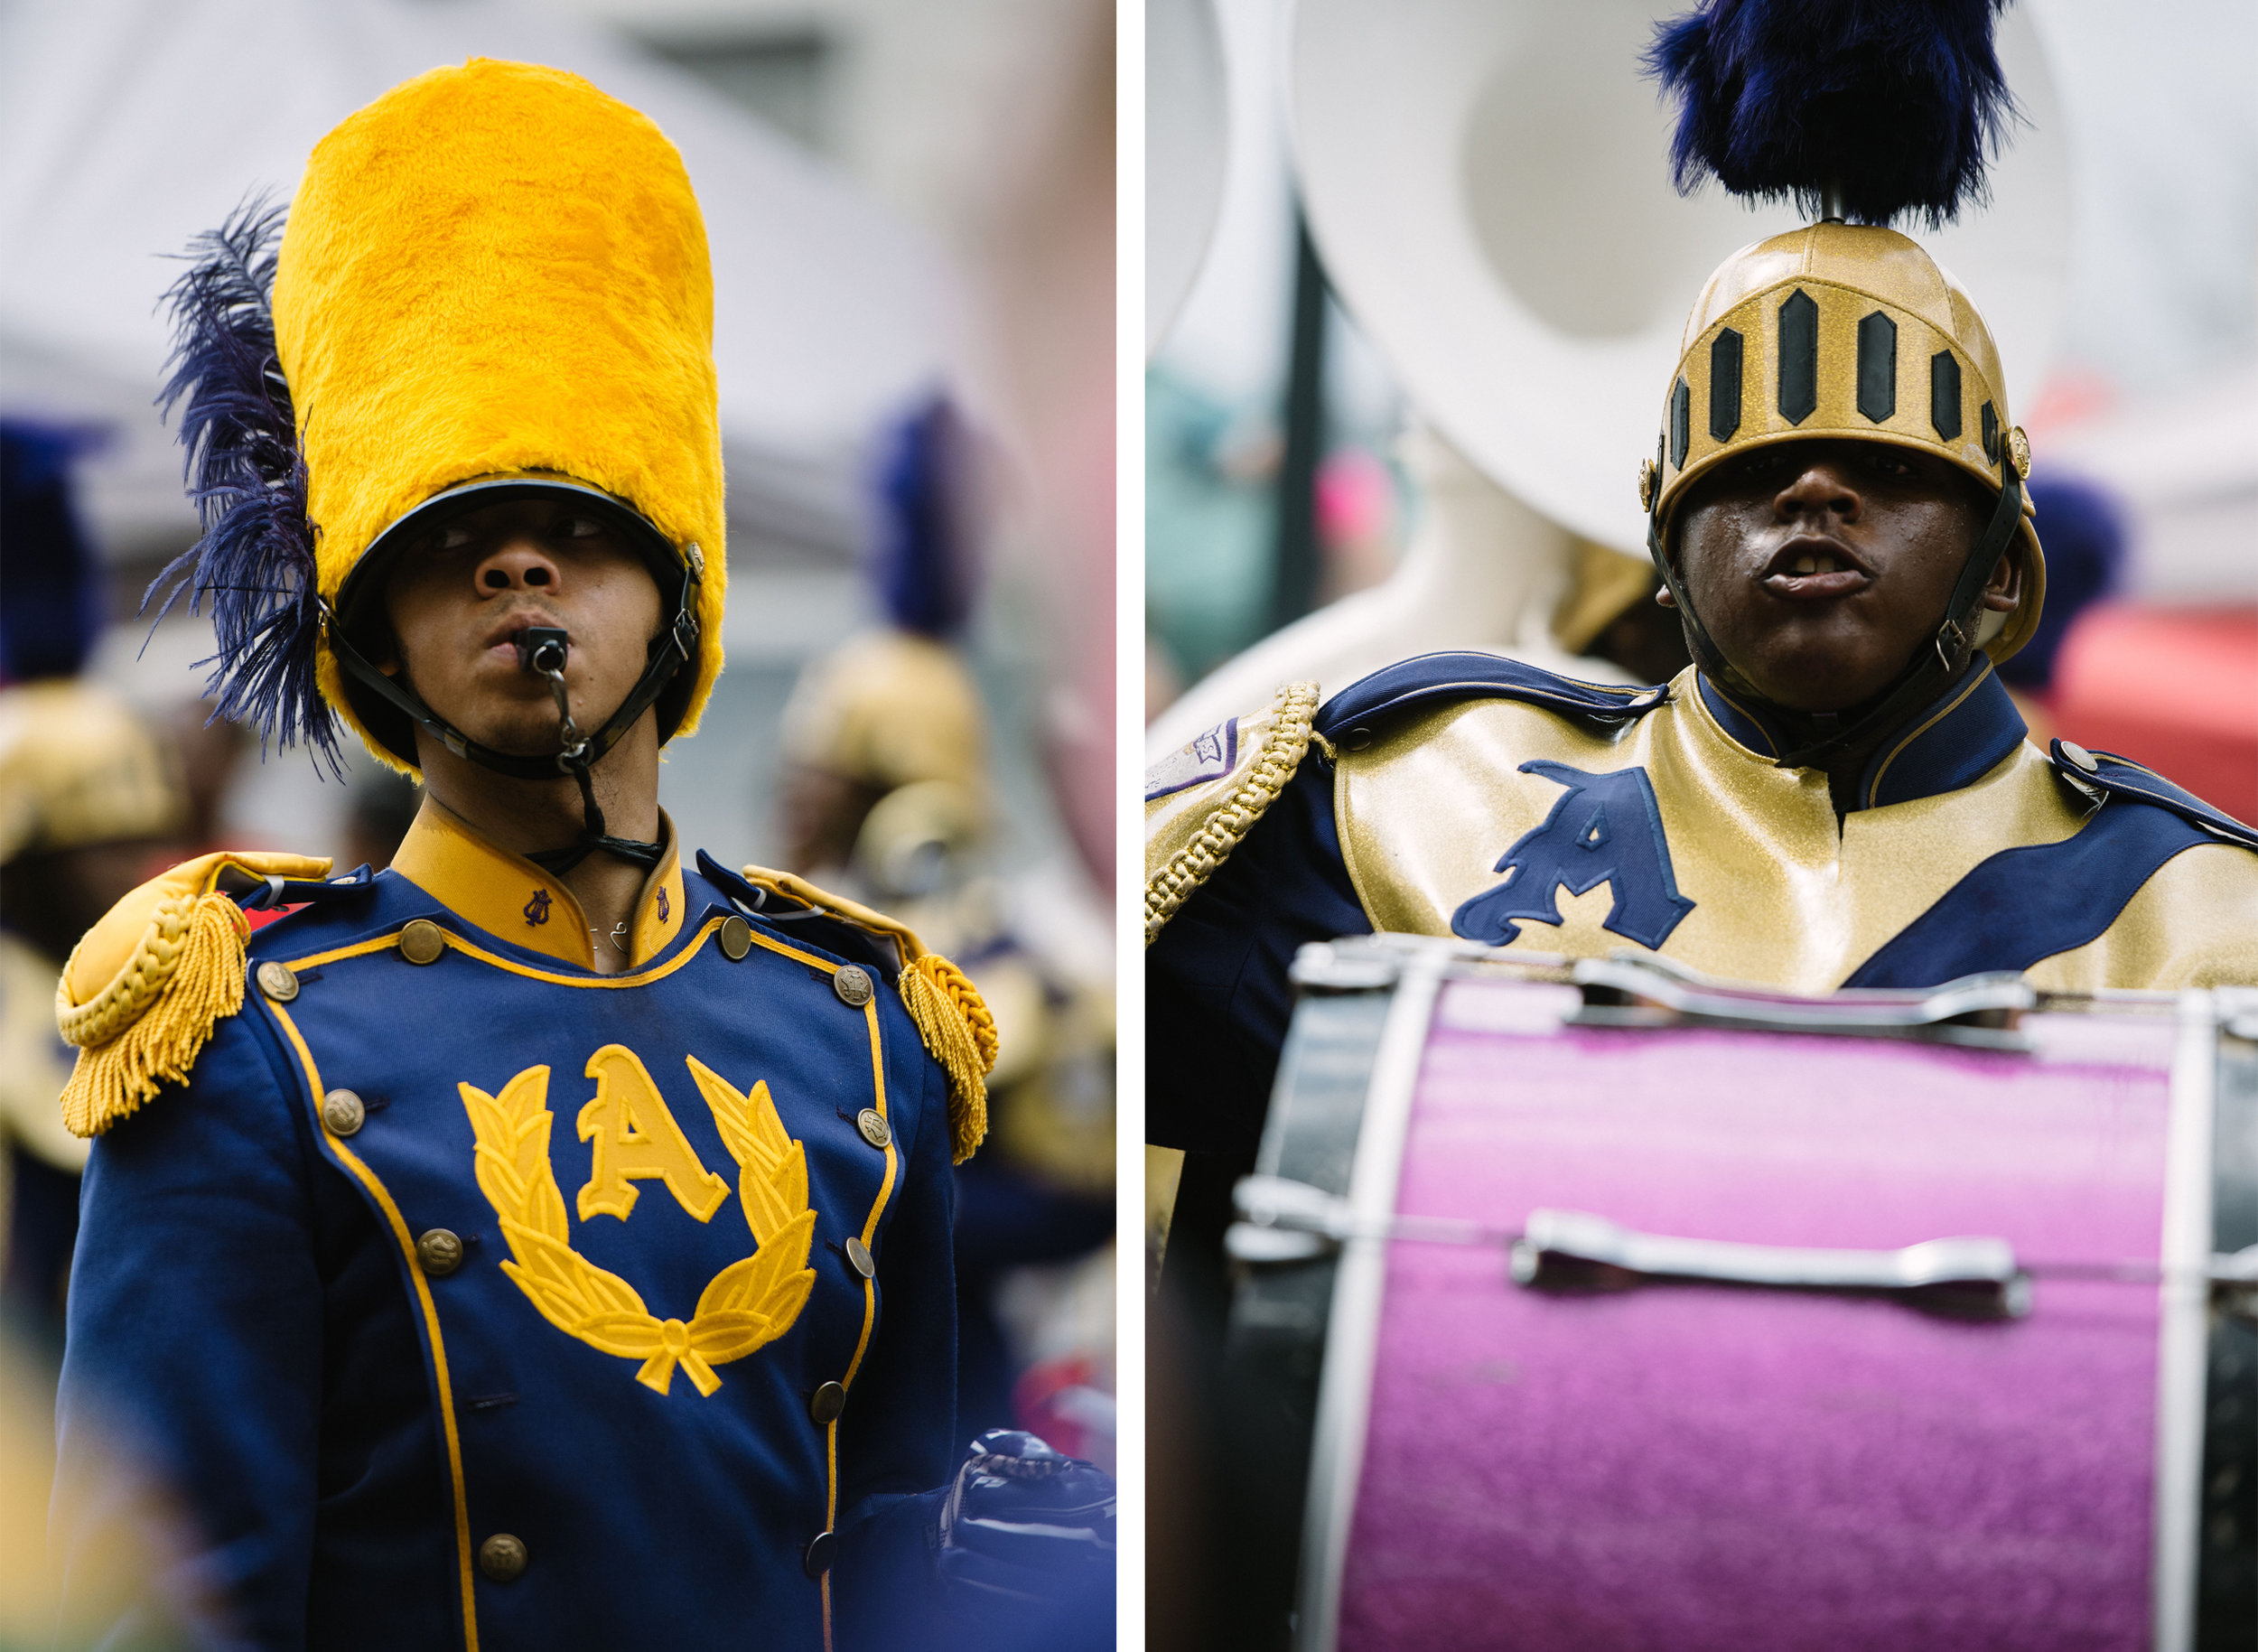 St. Aug Marching 100 during the REX parade 2017